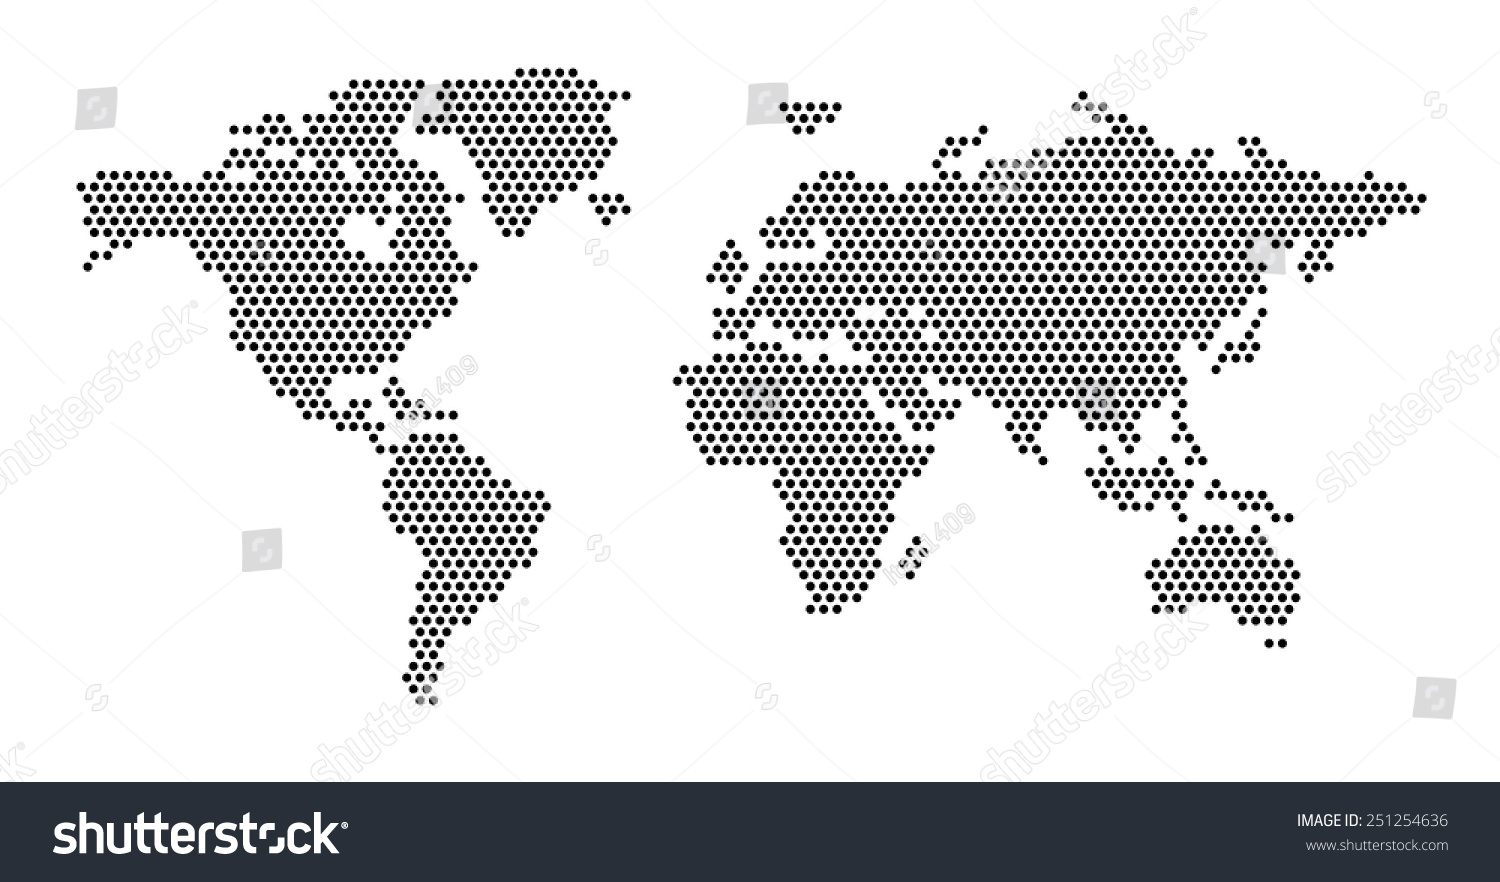 World map dots eps 10 vectores en stock 251254636 shutterstock world map dots eps 10 gumiabroncs Choice Image